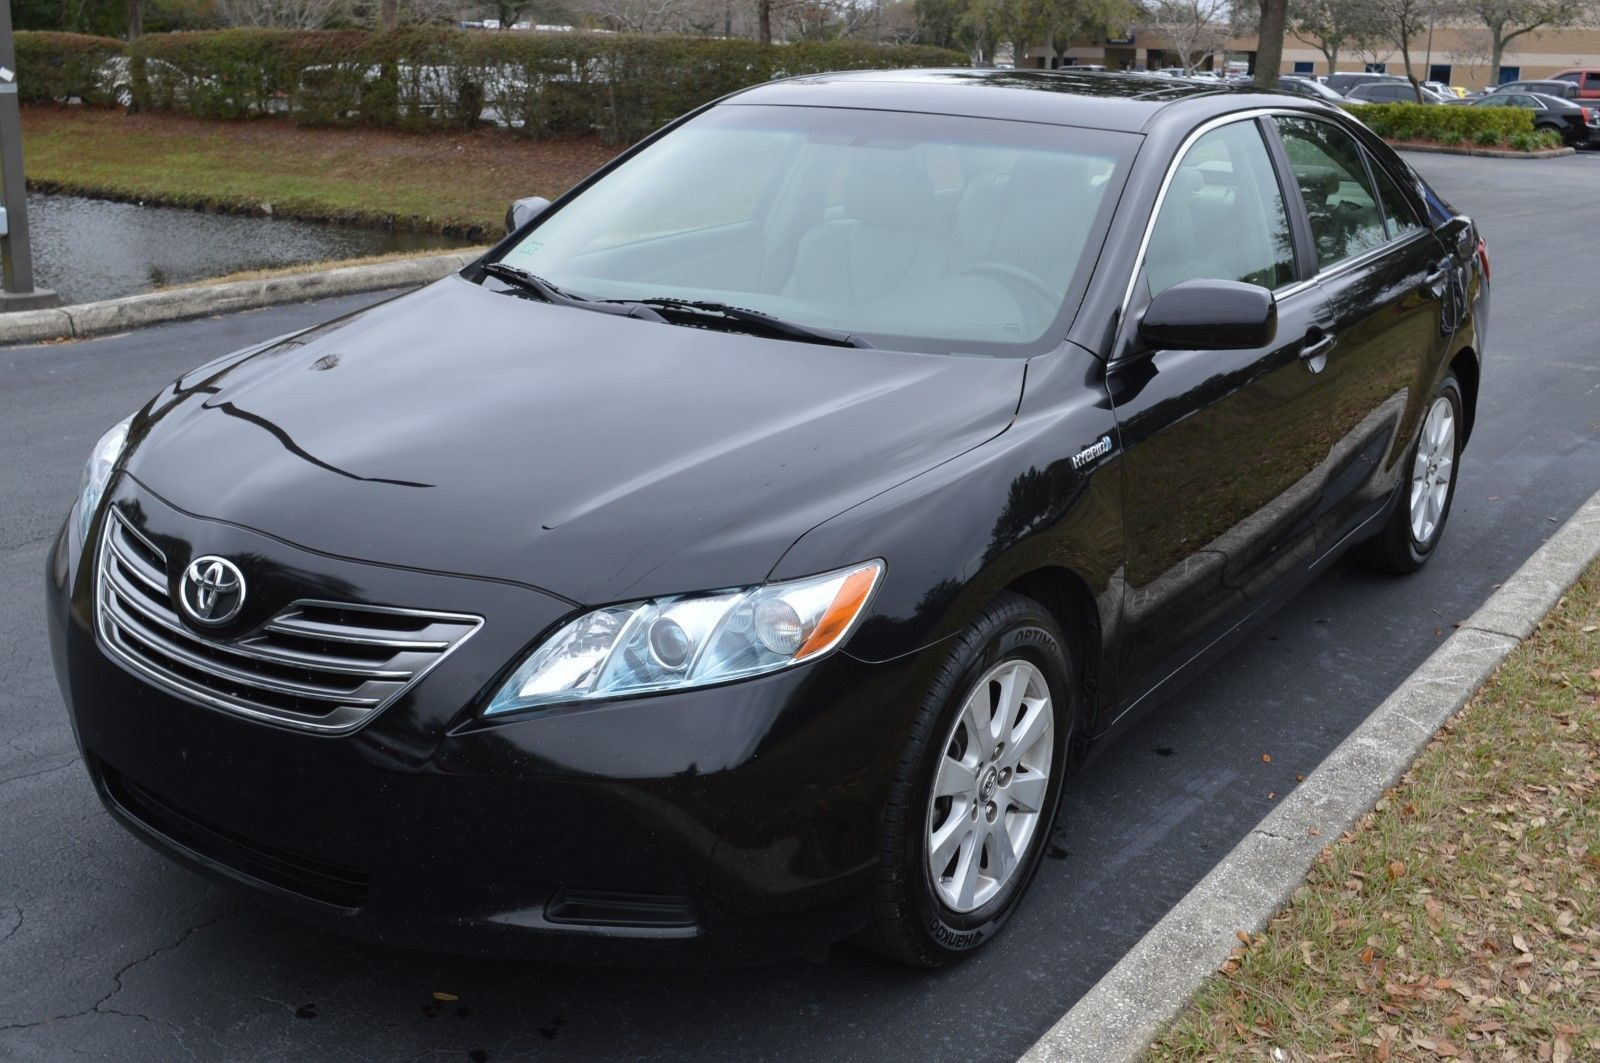 Great 2009 Toyota Camry Xle Hybrid Every Option Leather Roof Nav Perfect Carfax It Now 2018 2019